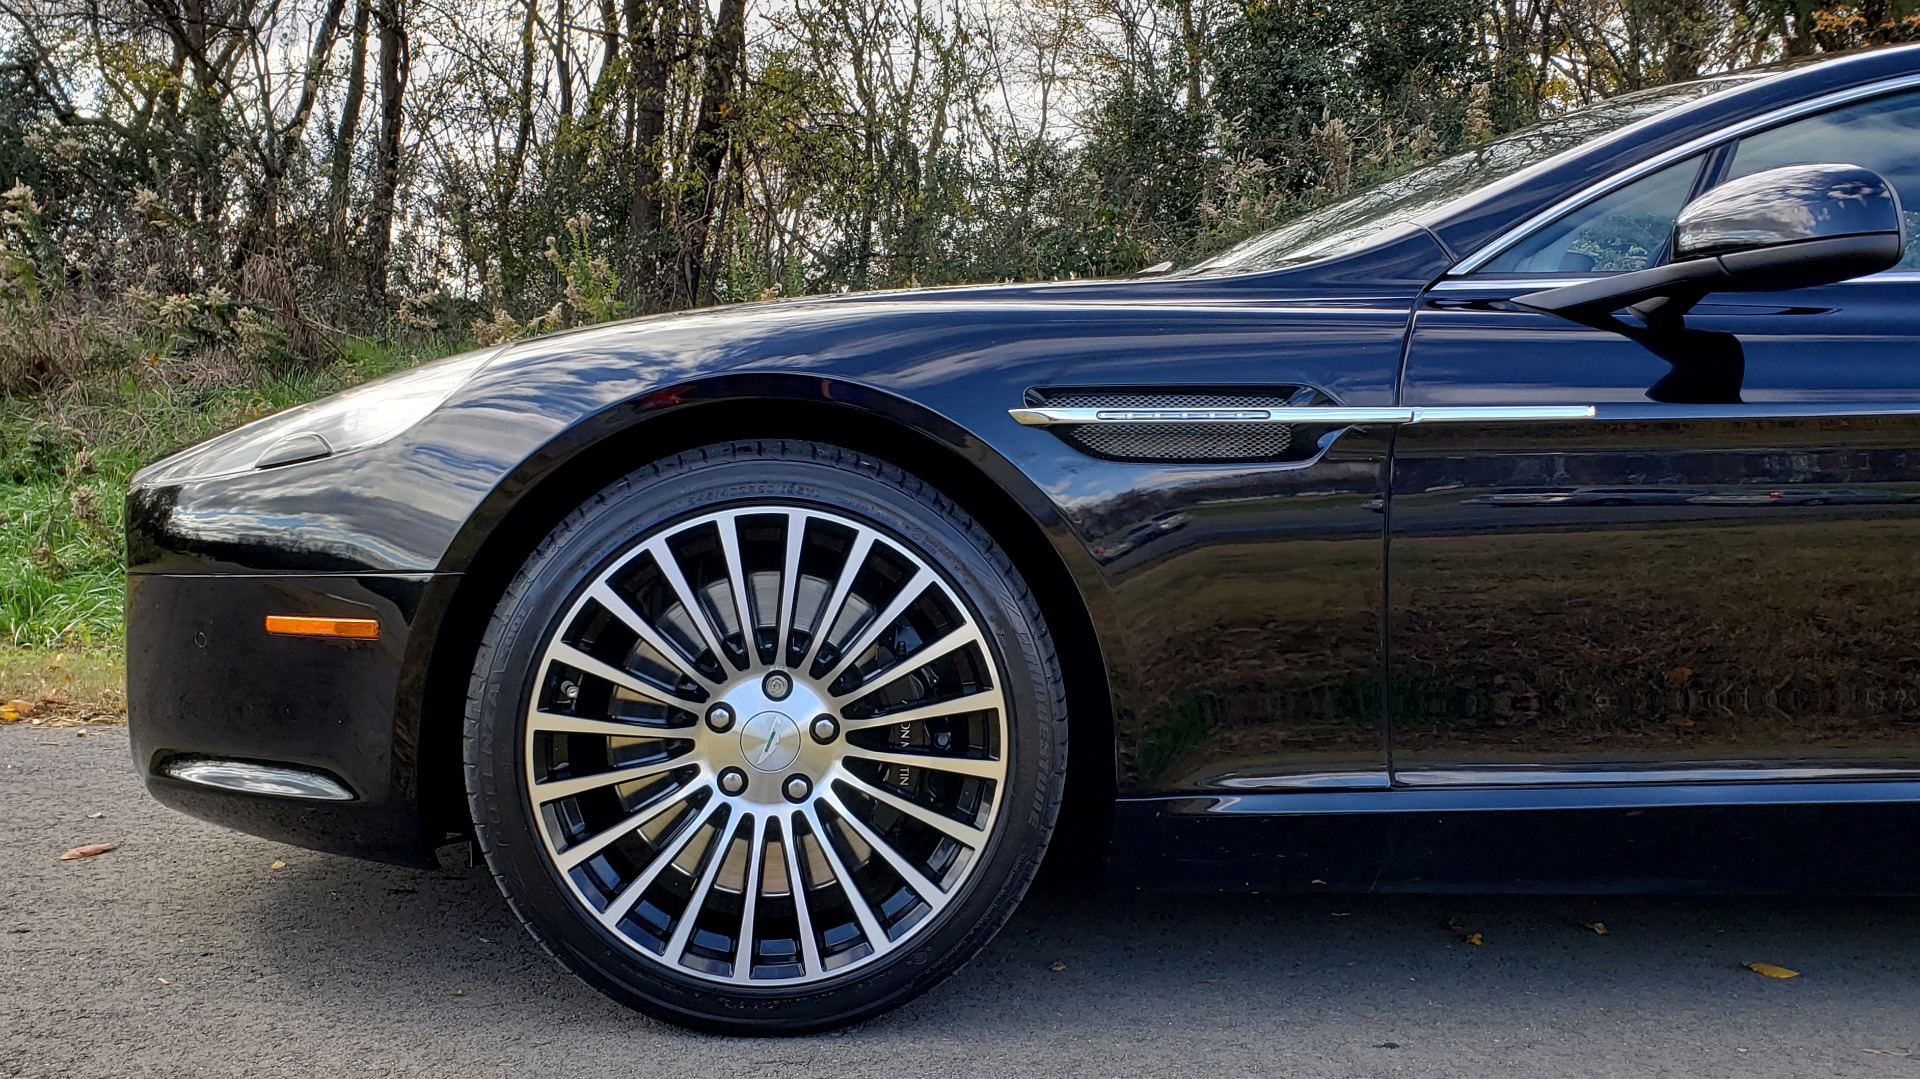 Used 2012 Aston Martin RAPIDE LUXURY 6.0L V12 / NAV / B&O SND / ENTERTAINMENT / REARVIEW for sale Sold at Formula Imports in Charlotte NC 28227 83